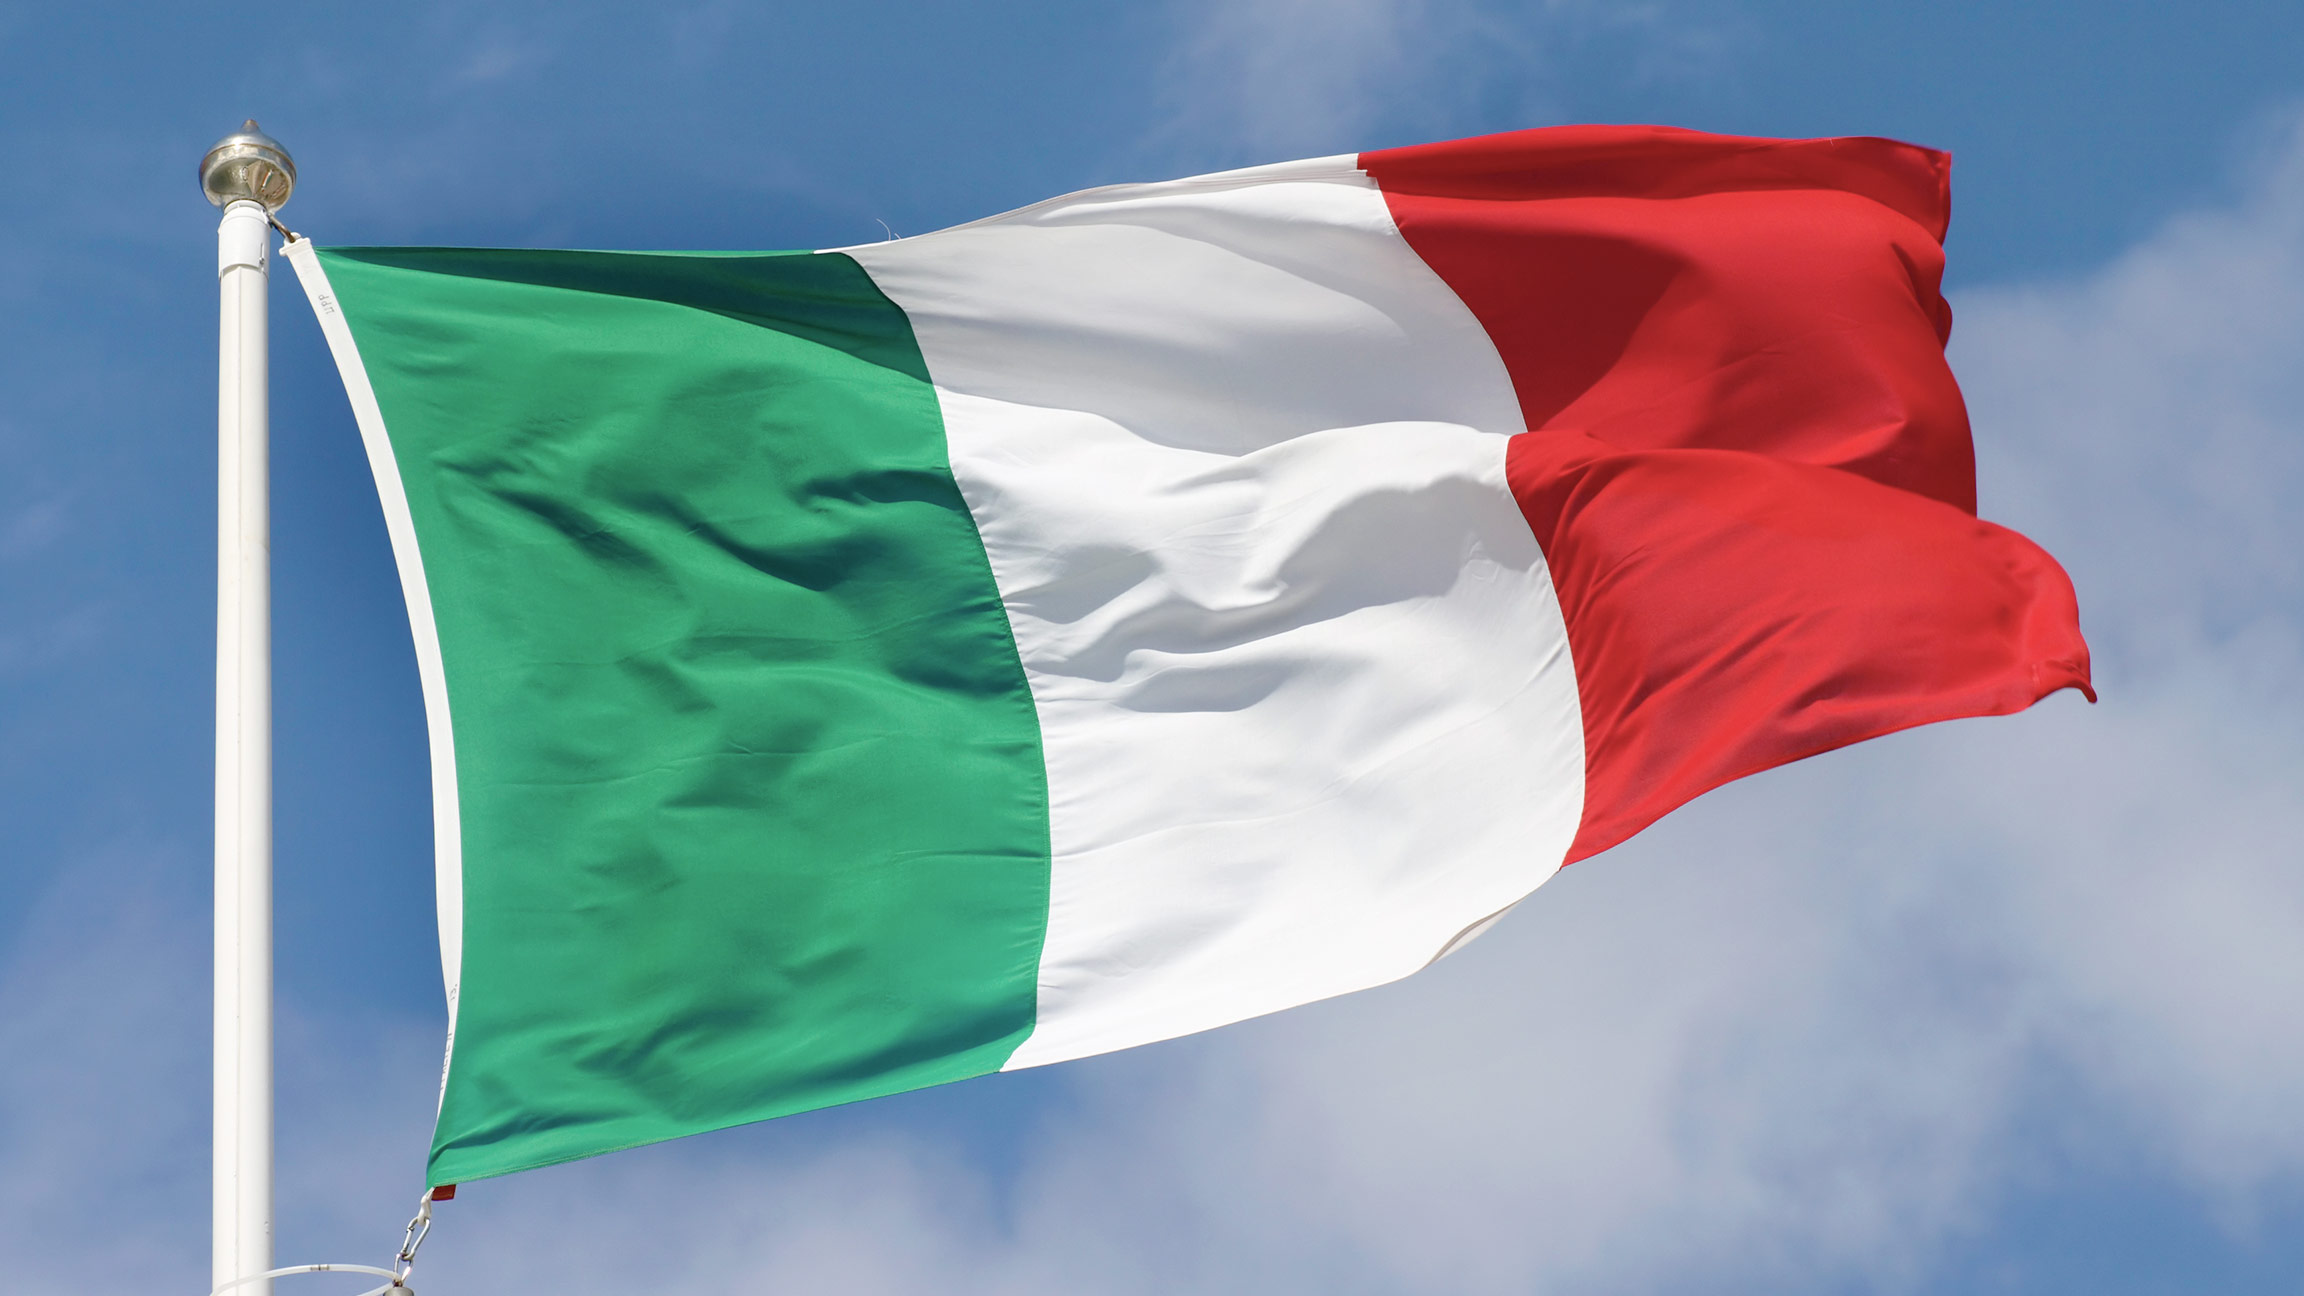 Italy Election Results: Focus on the Fundamentals